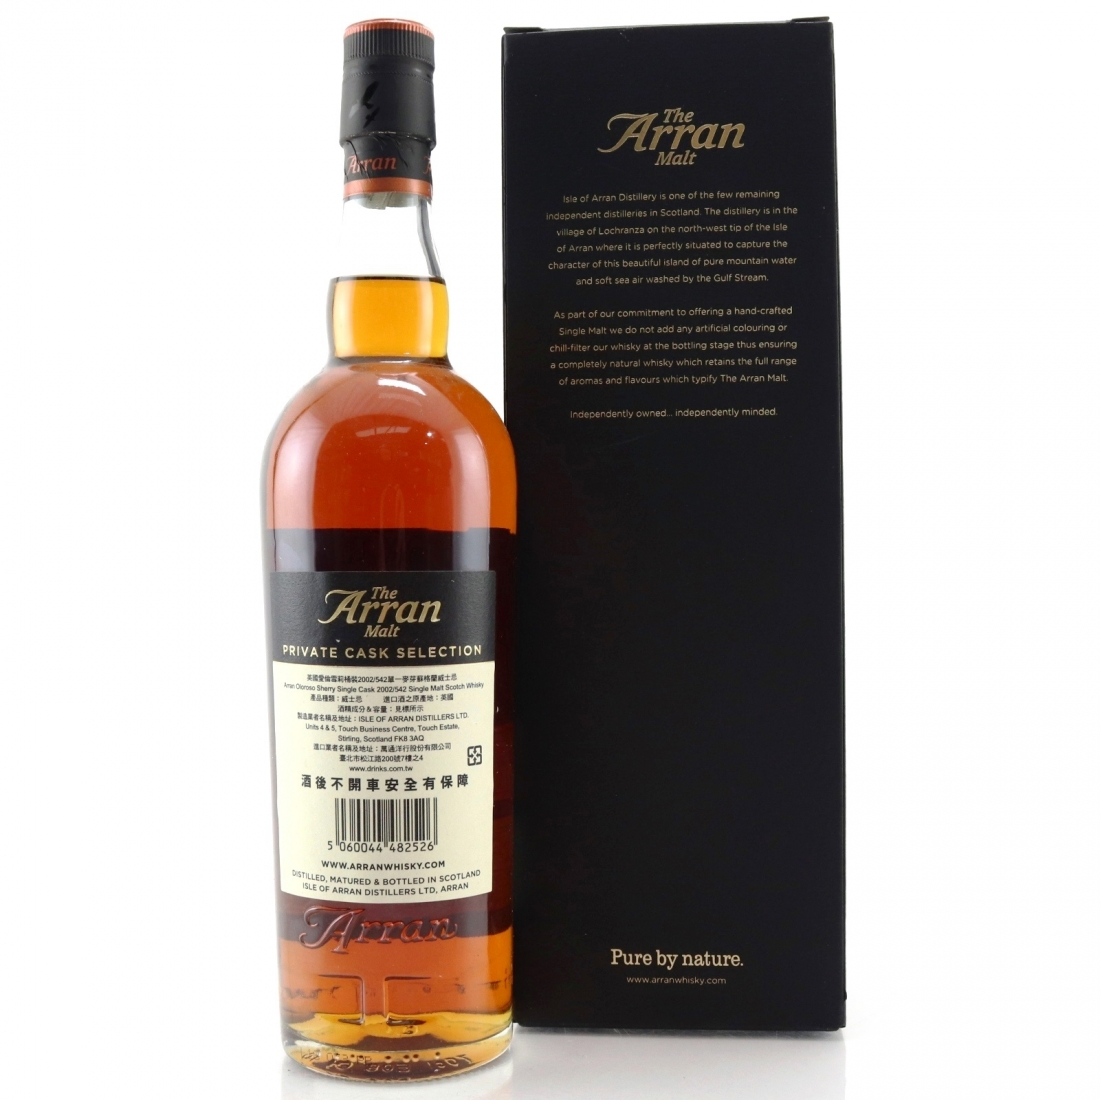 Arran 2002 Private Cask #542 15 Year Old / Year Of the Dog